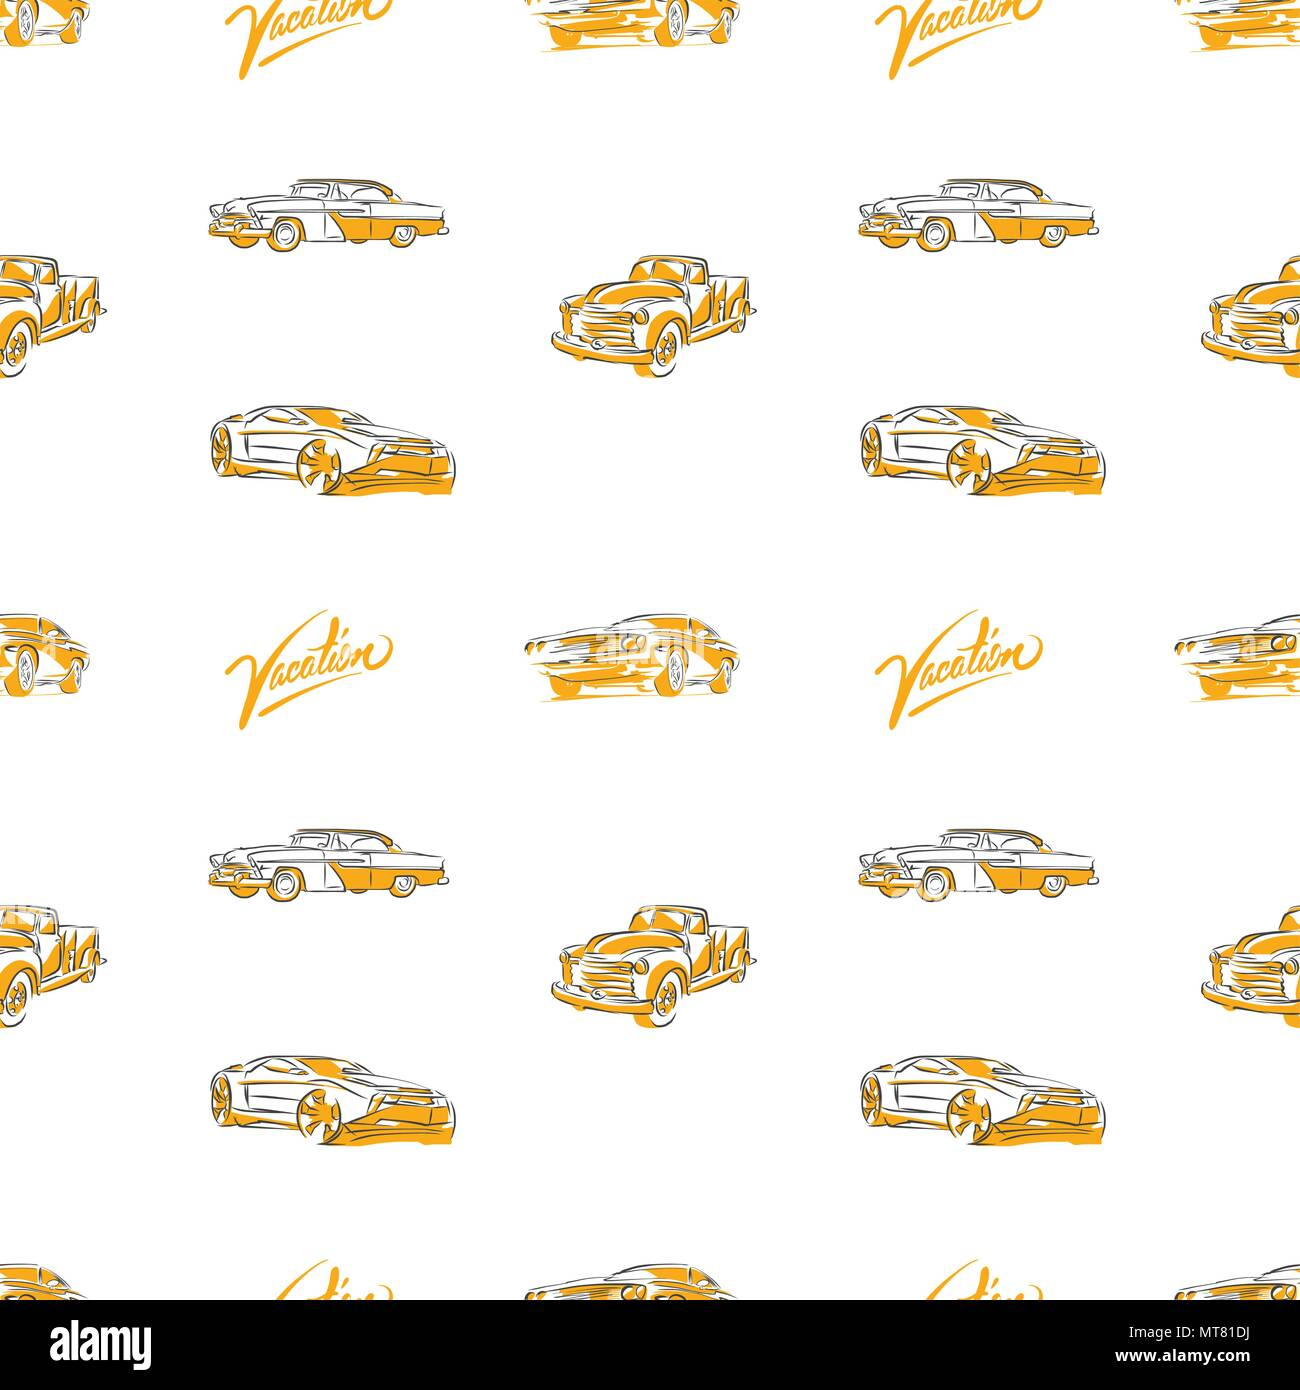 Old cars seamless pattern. Hand drawn vector illustration. - Stock Image